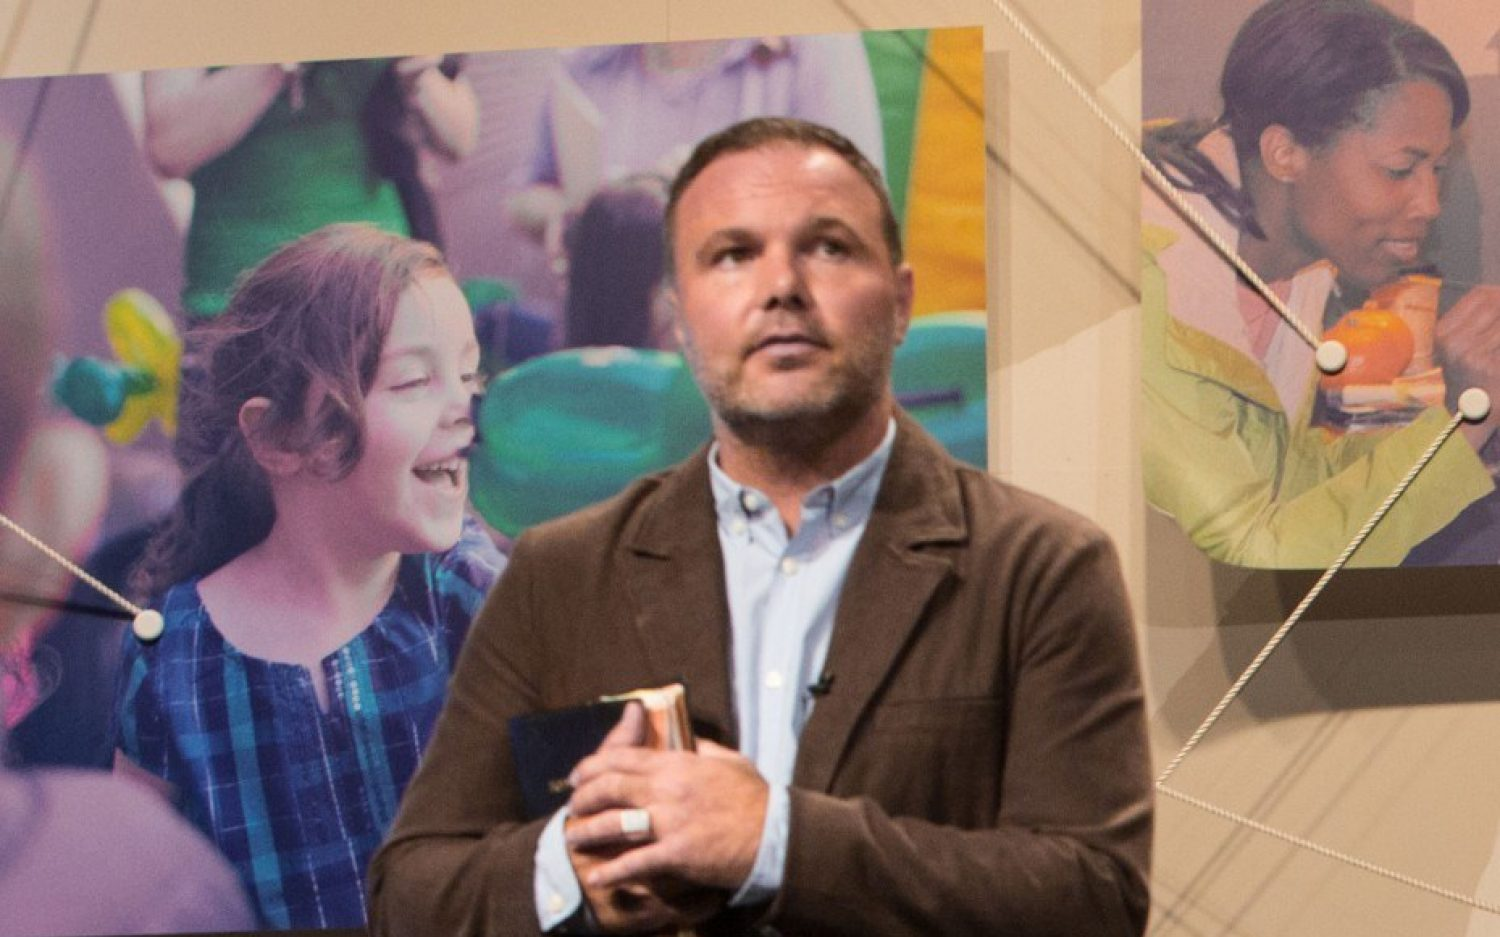 Mark Driscoll resigns as pastor of Mars Hill Church